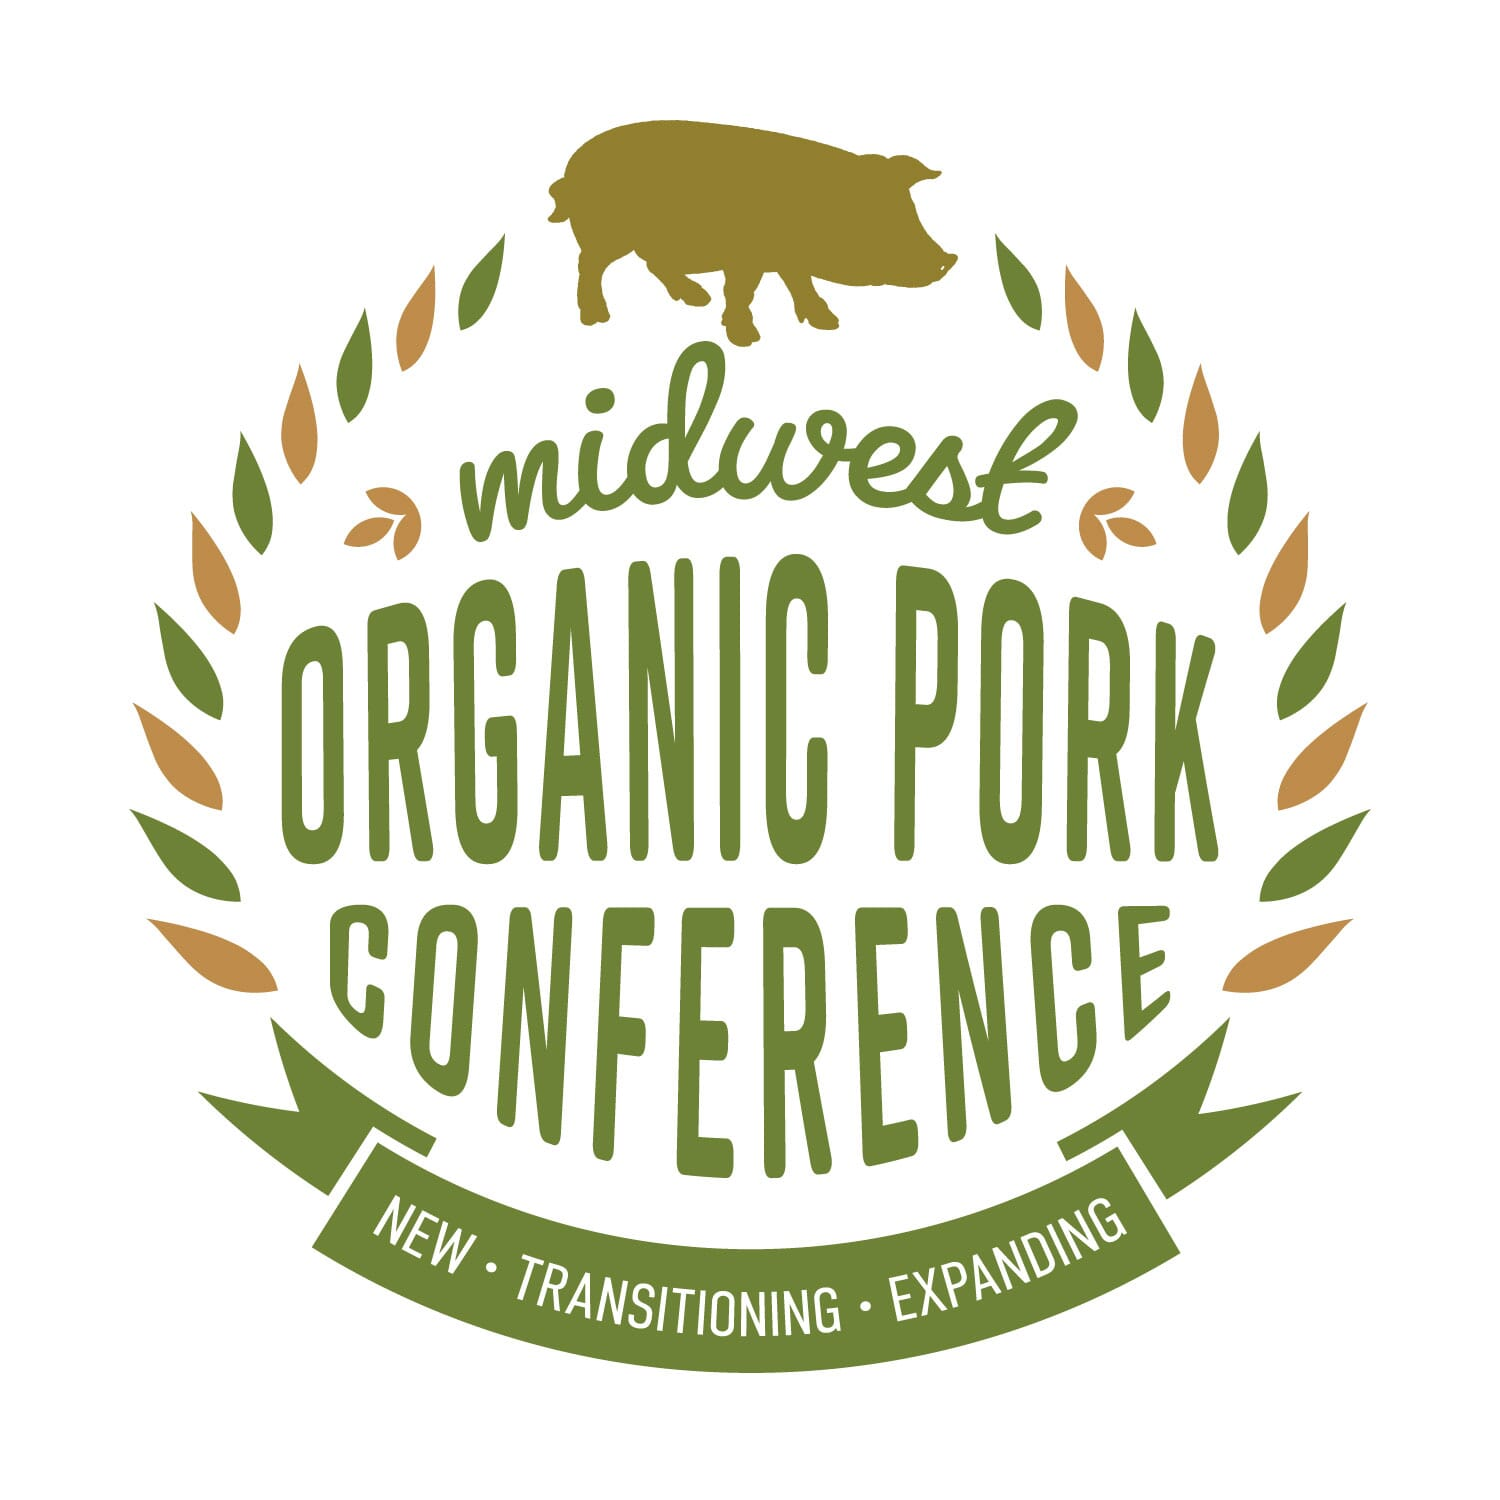 Iowa to host Midwest Organic Pork Conference | The Pig Site